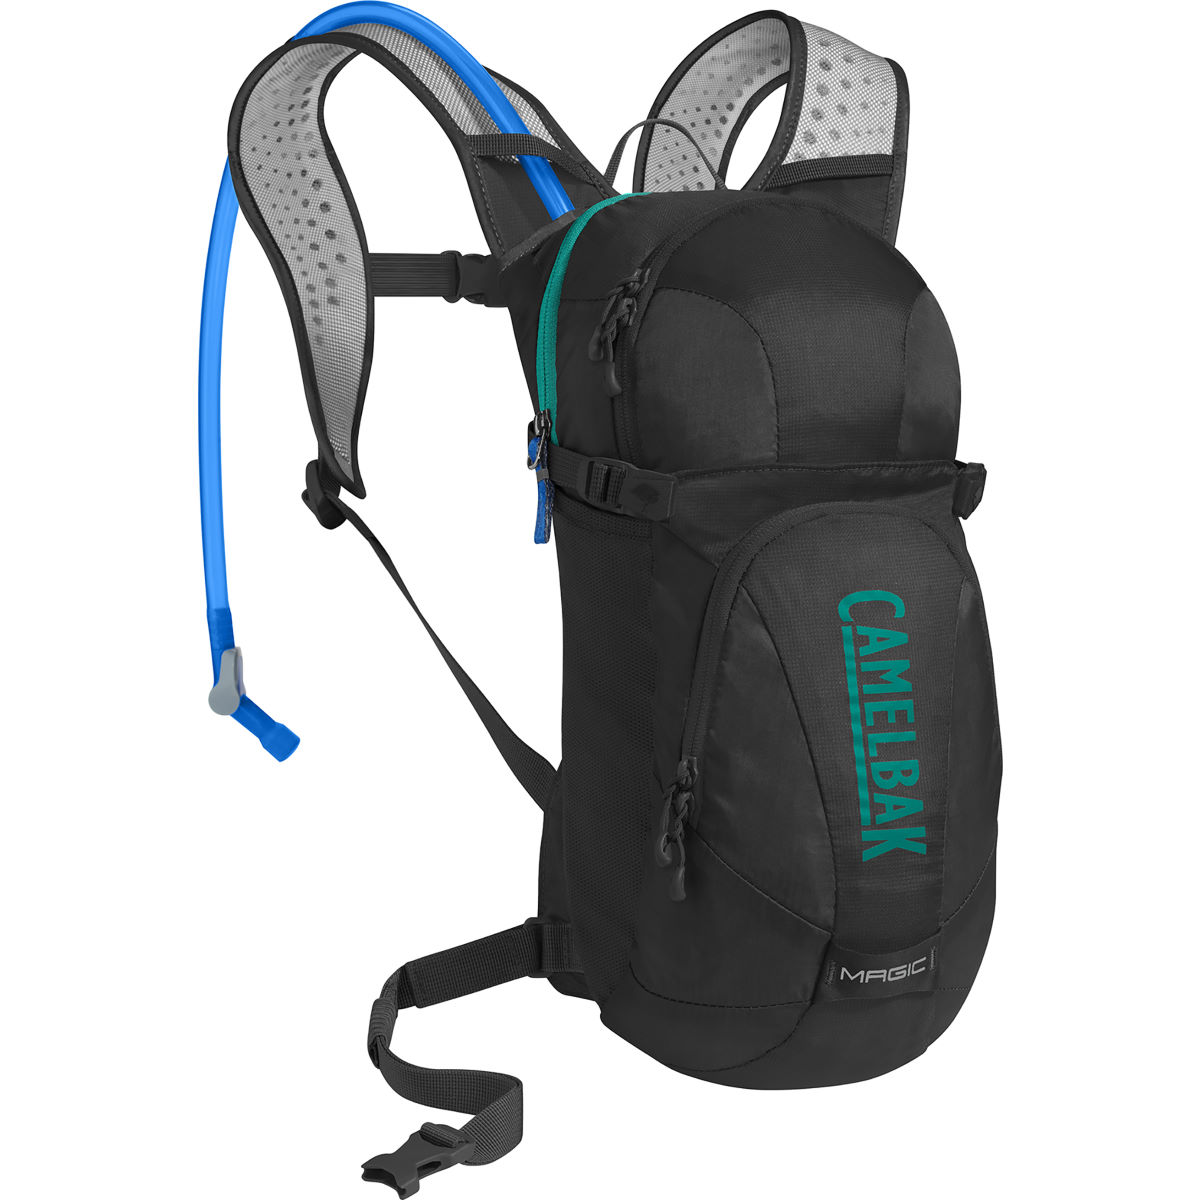 Sac d'hydratation Femme Camelbak MAGIC - One Size Sacs d'hydratation